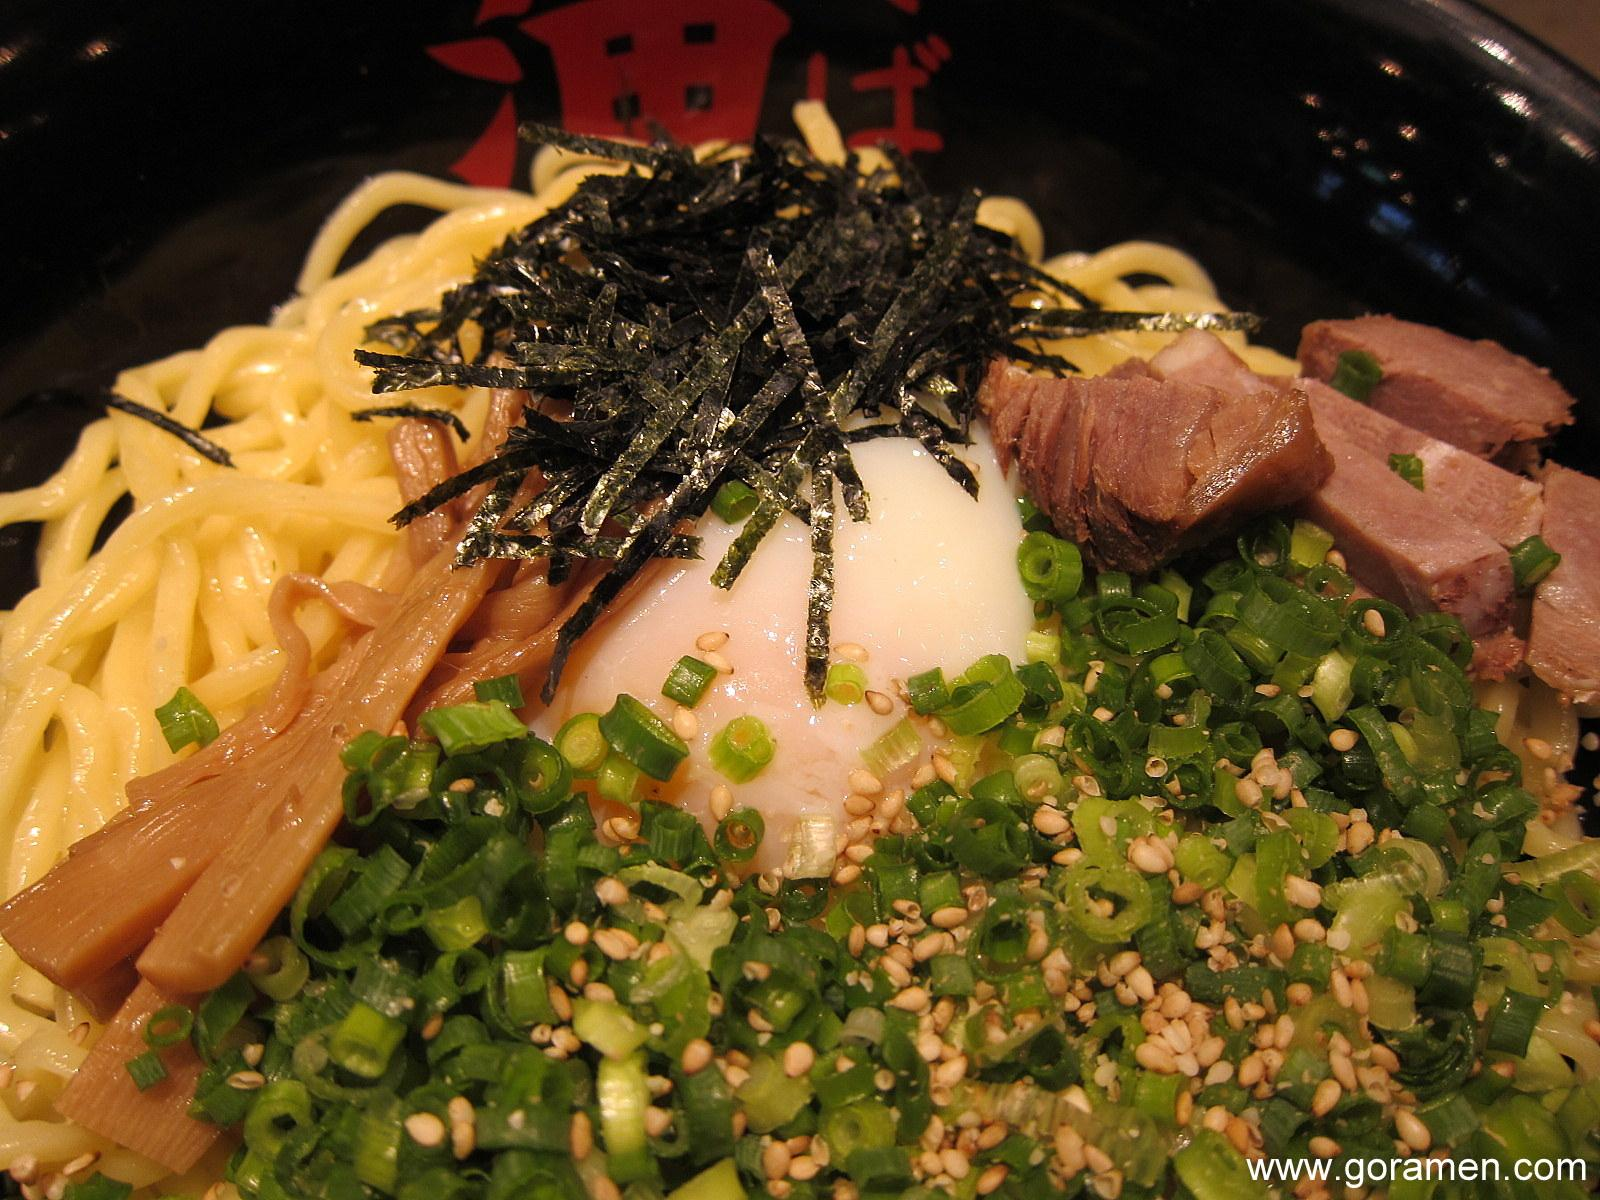 At 'Abura Soba' Here, one of the most popular choices is the crunchy onions combined with the smoothness of the noodles.